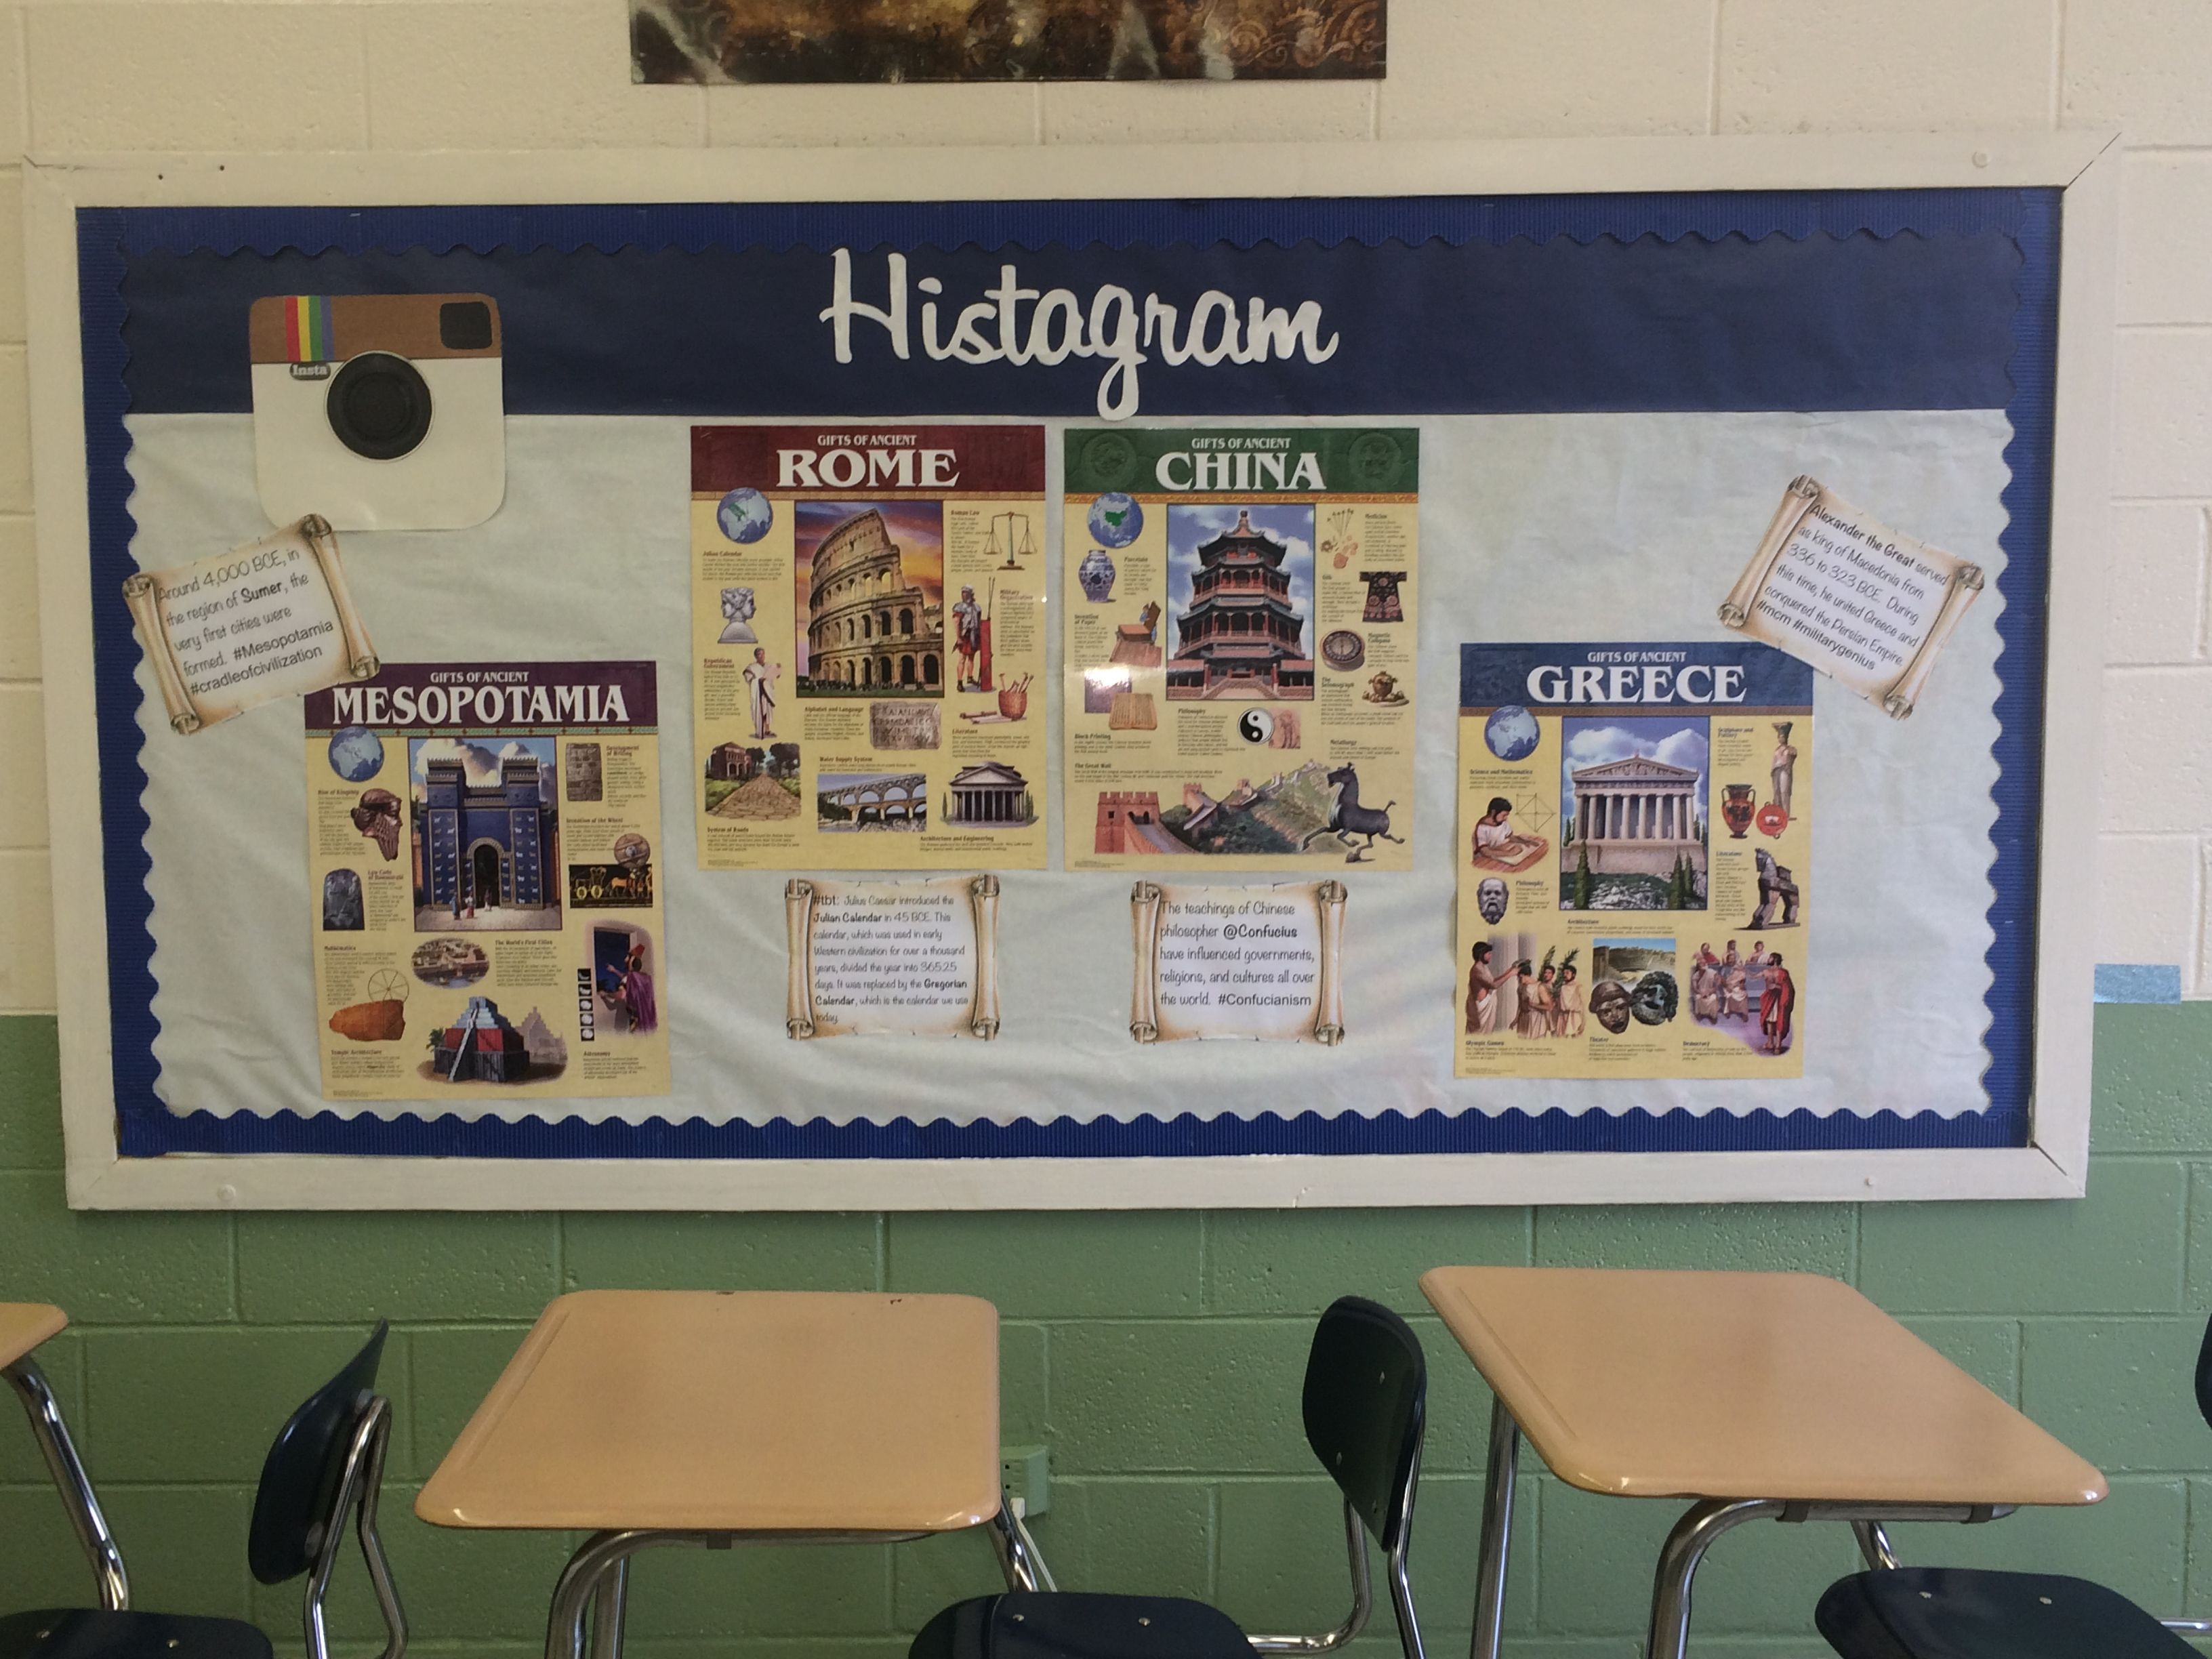 Poster design ideas for school - History Classroom Decorations World History Classroom Teaching History Classroom Ideas History Bulletin Boards Historian Middle School Social Studies